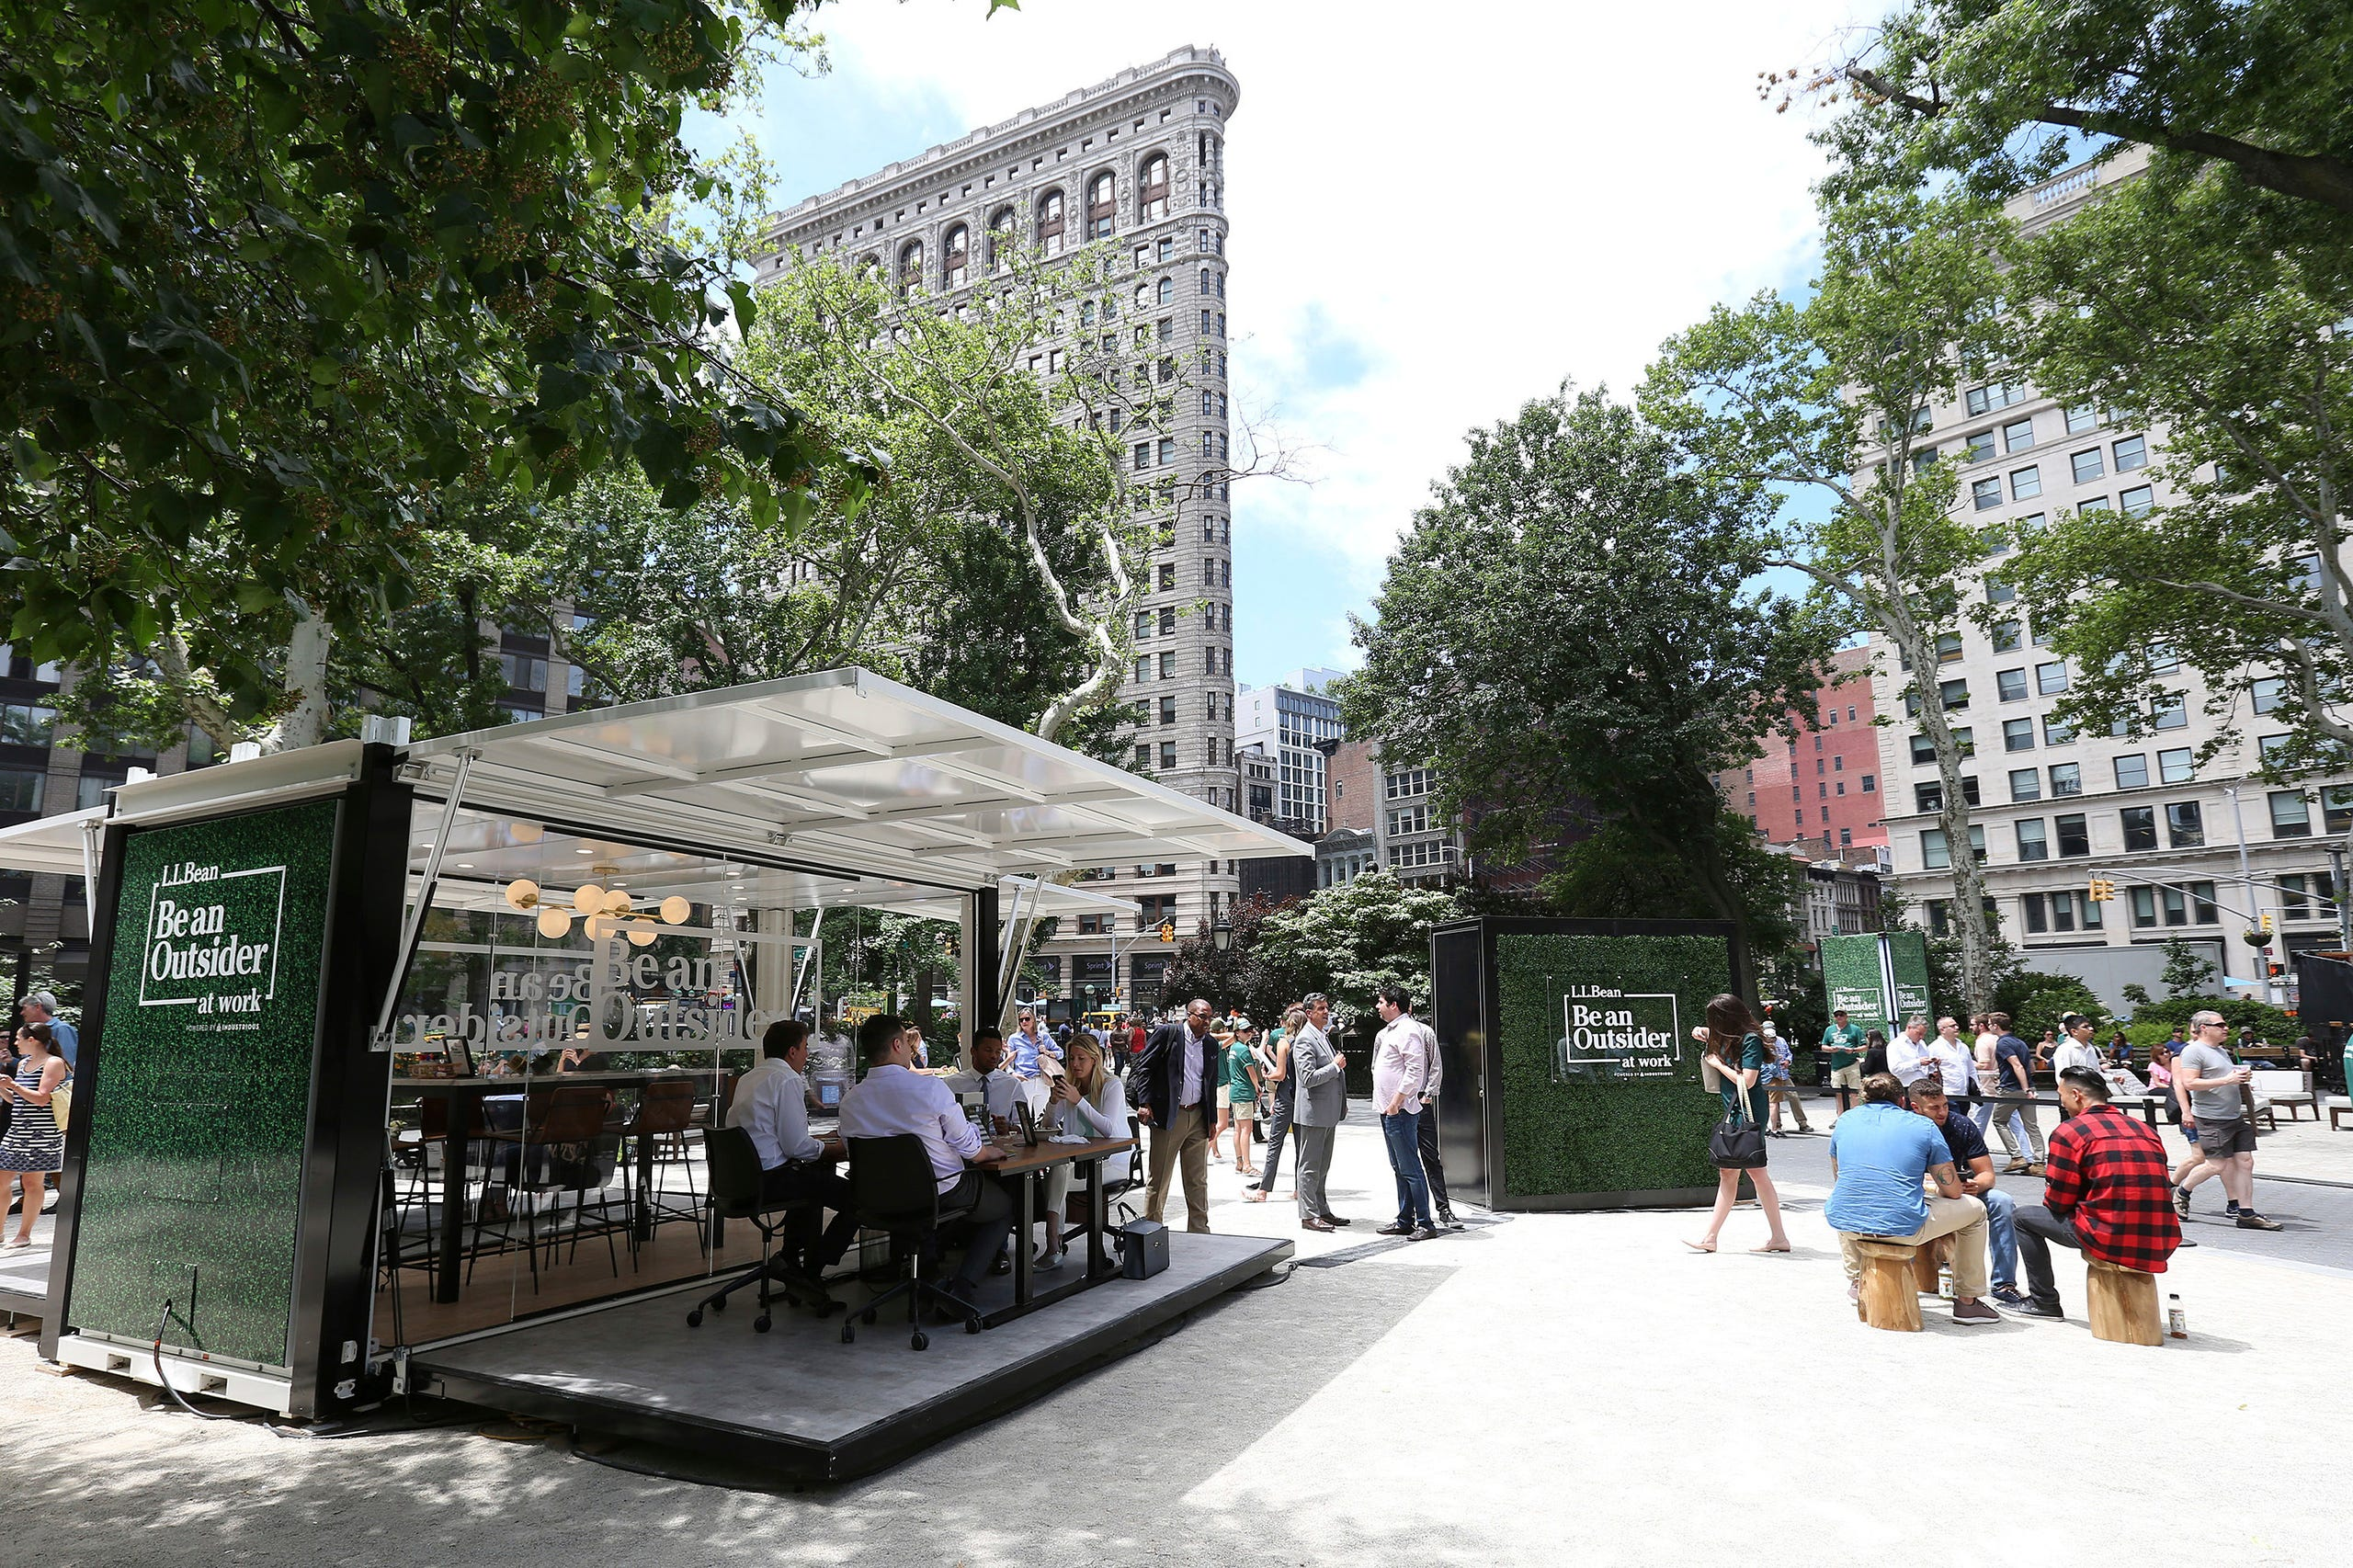 L Bean Debuts The First Ever Outdoor Co Working E In Partnership With Industrious